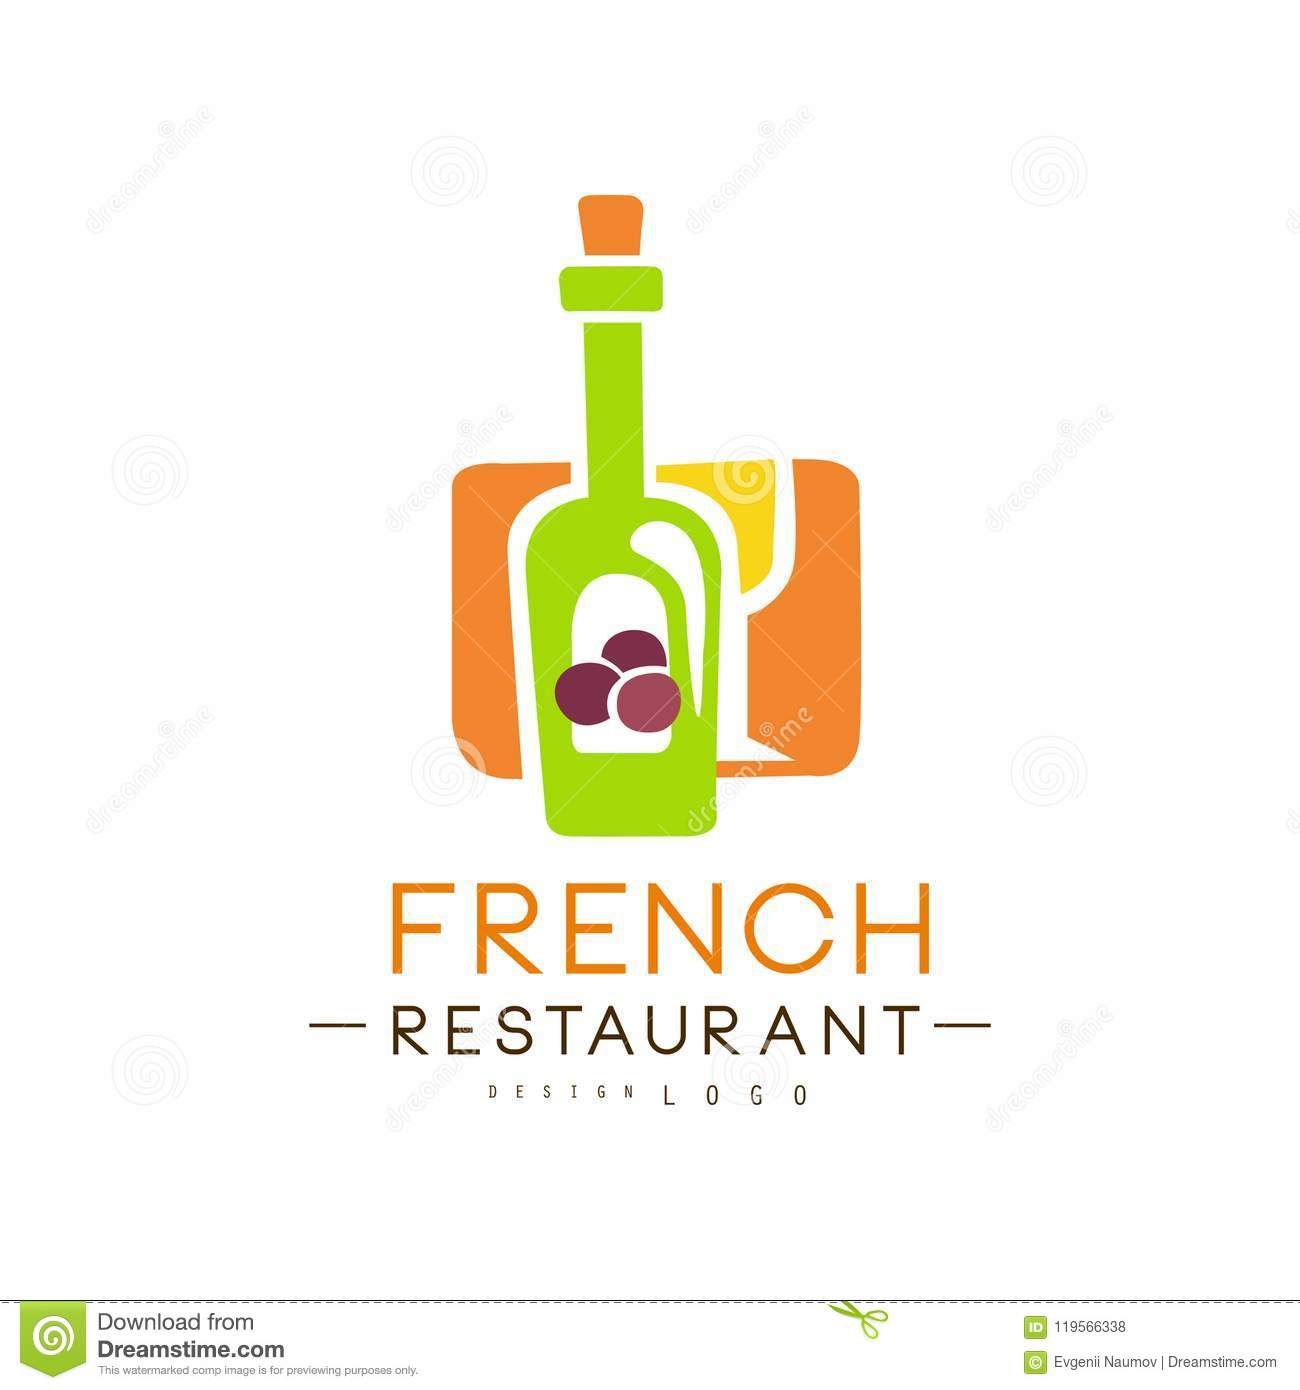 French Restaurant Logo Design Authentic Traditional Continental Food Label Vector Illustration On A White Background Stock Vector Illustration Of Cook Business 119566338